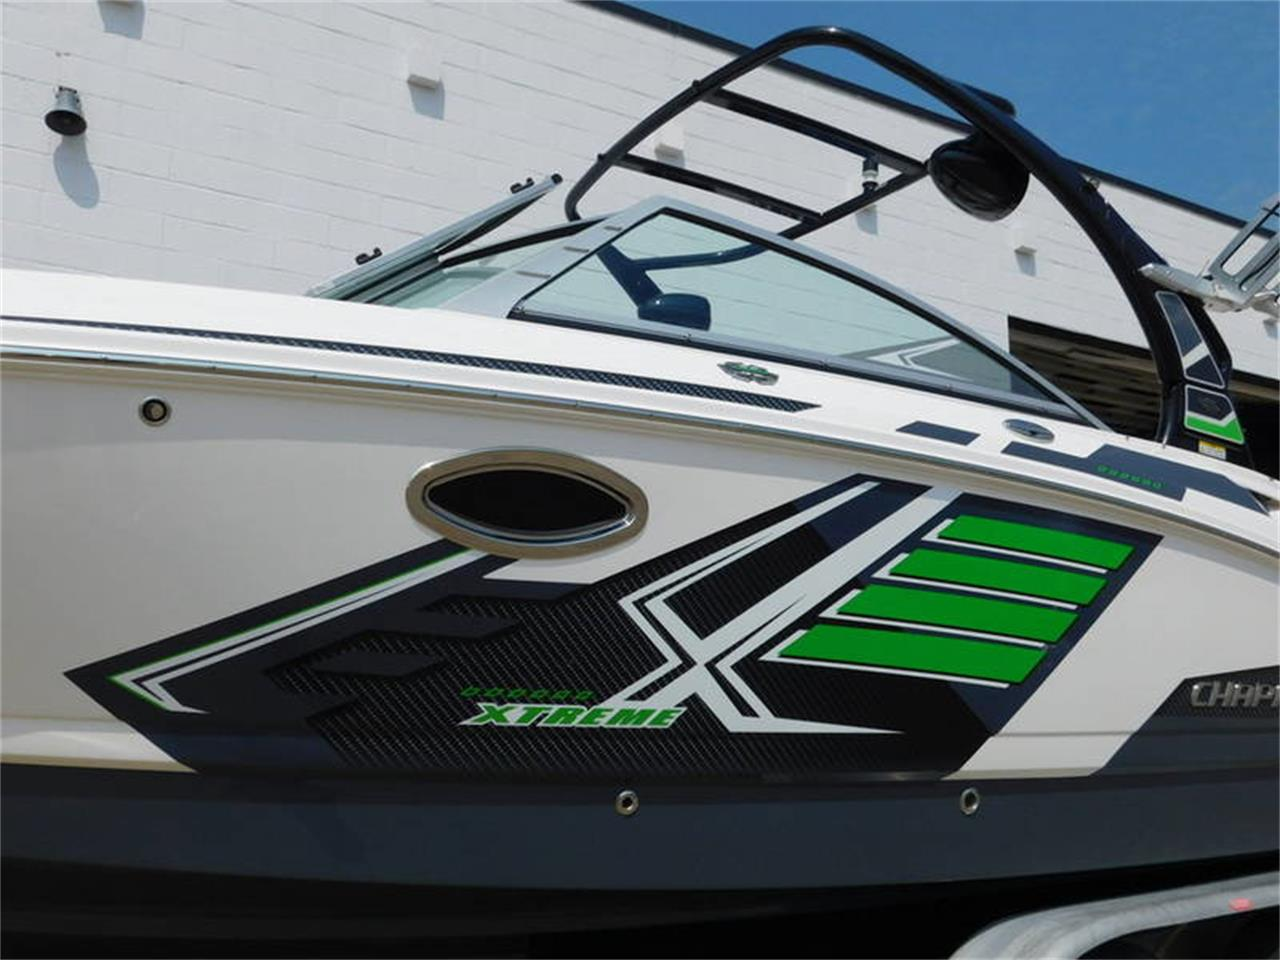 Large Picture of 2014 Boat located in New York - NV3P